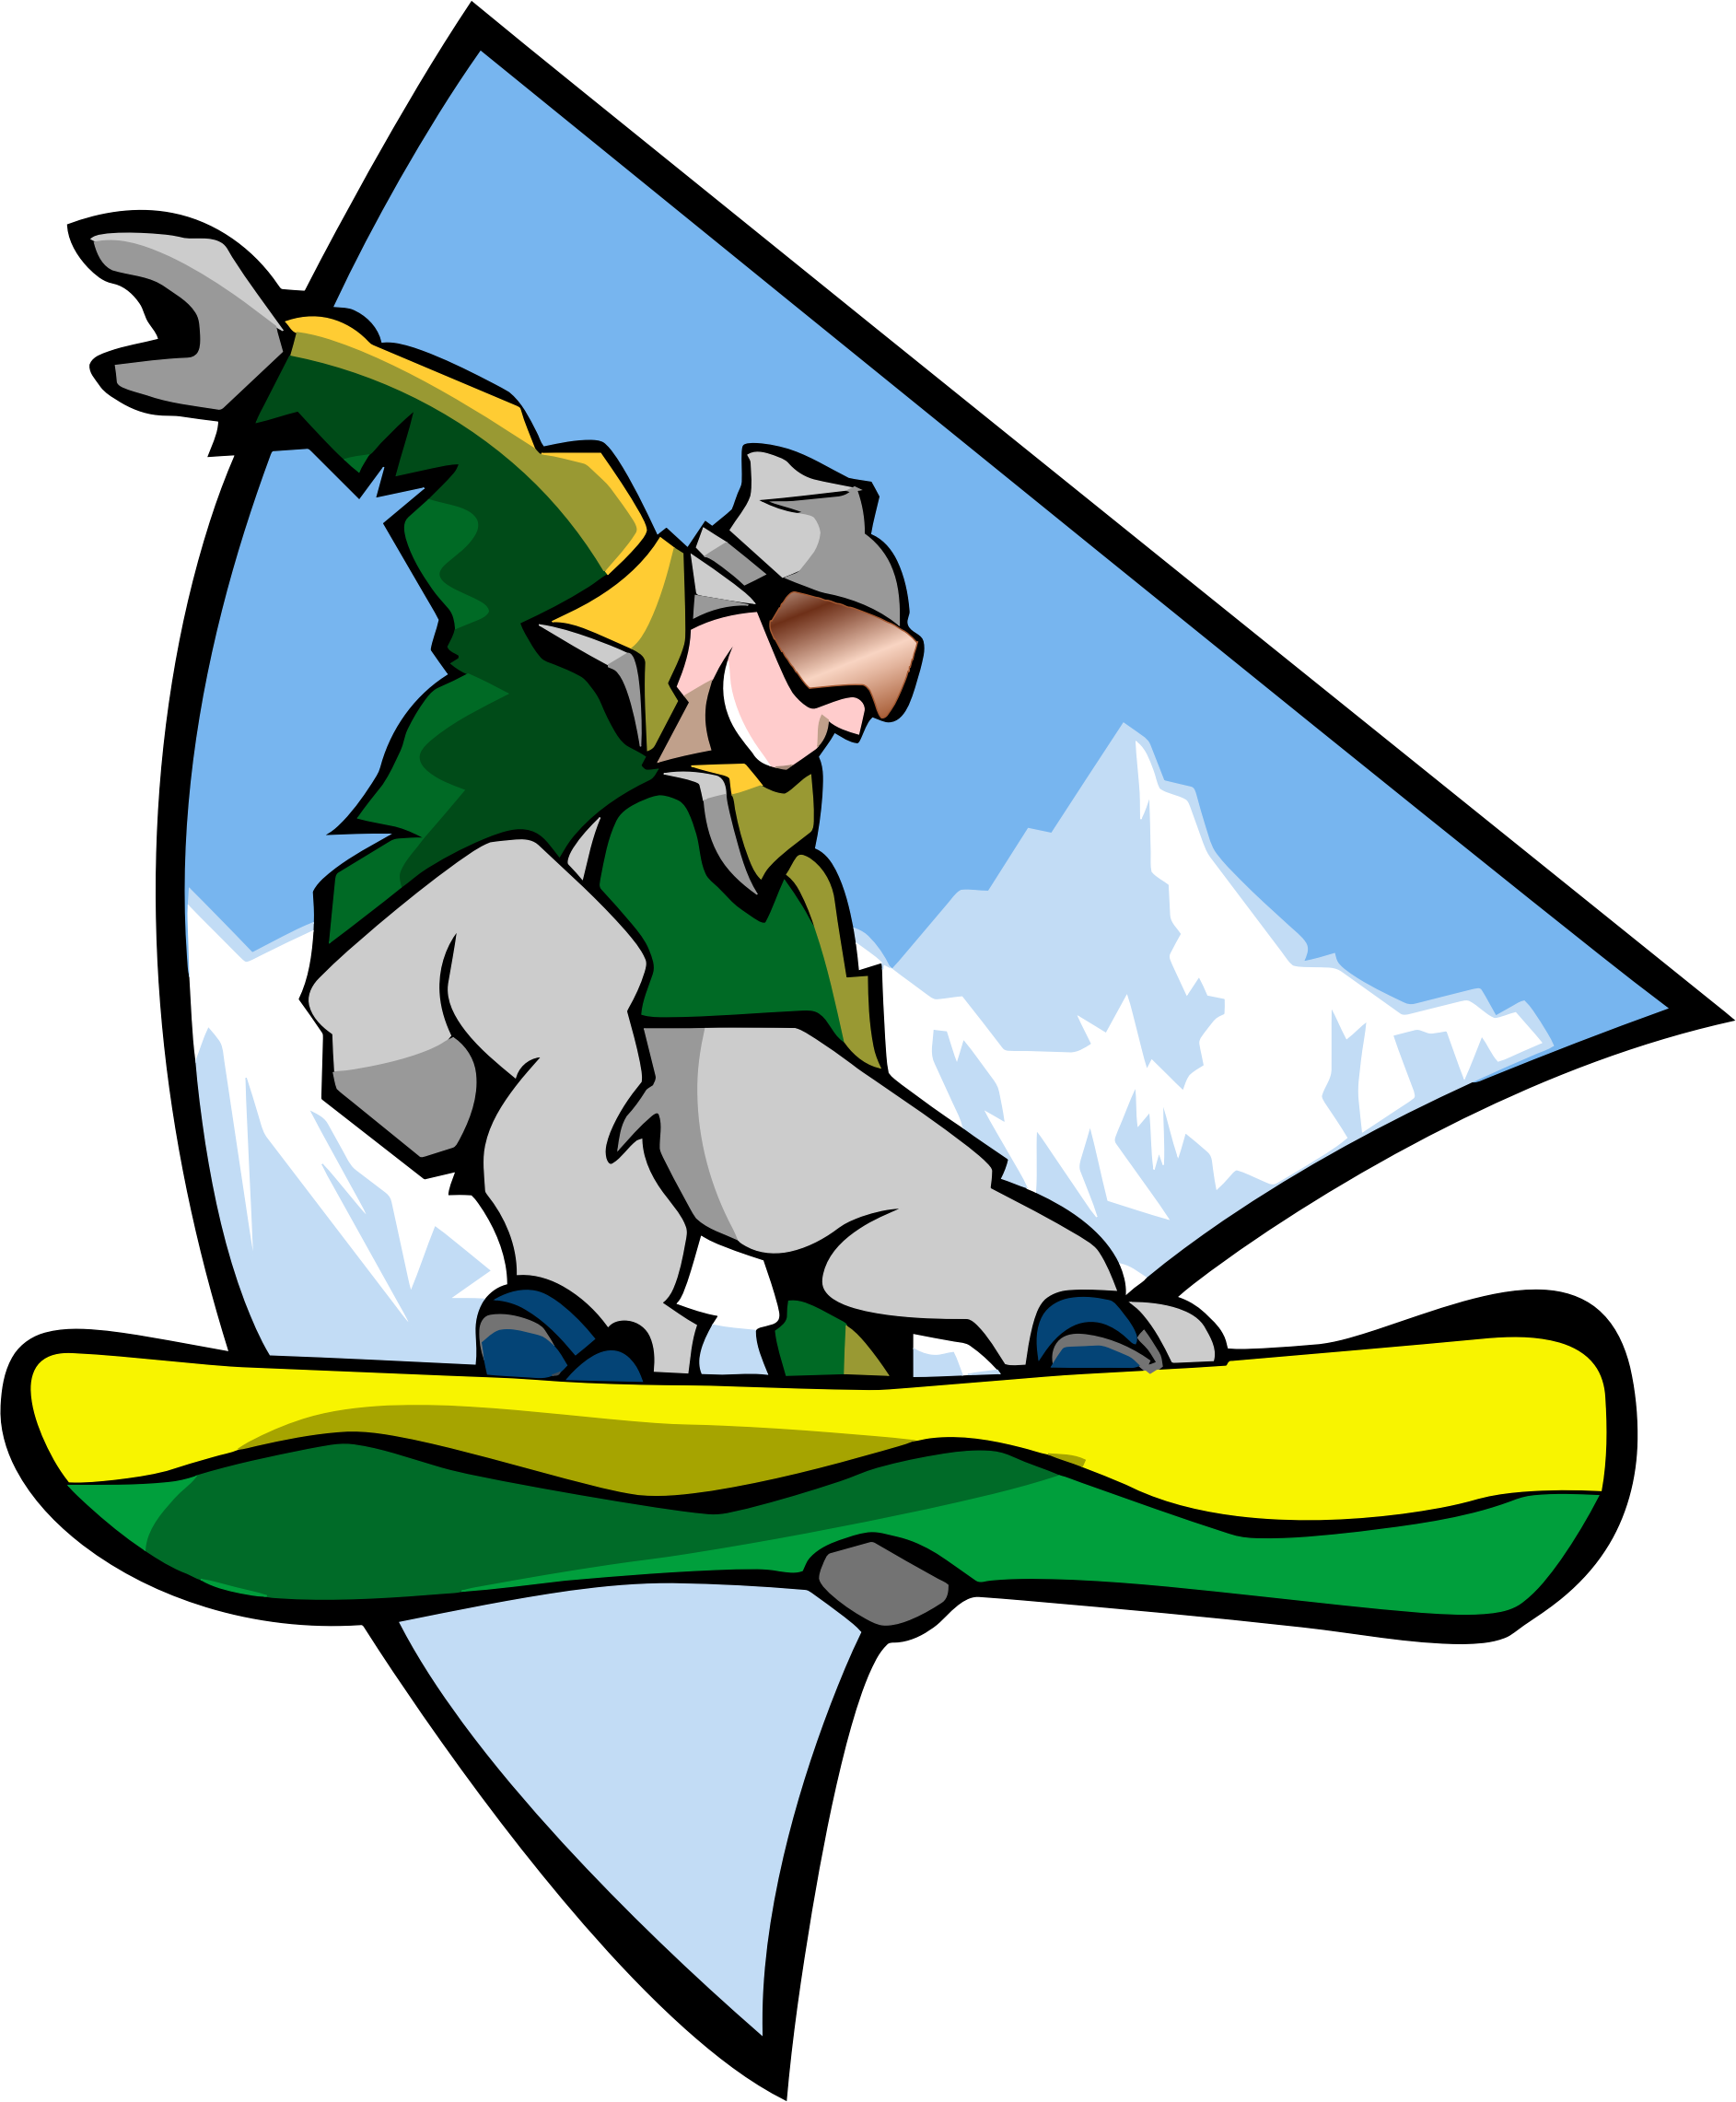 Snowboarding Man 2 by GDJ